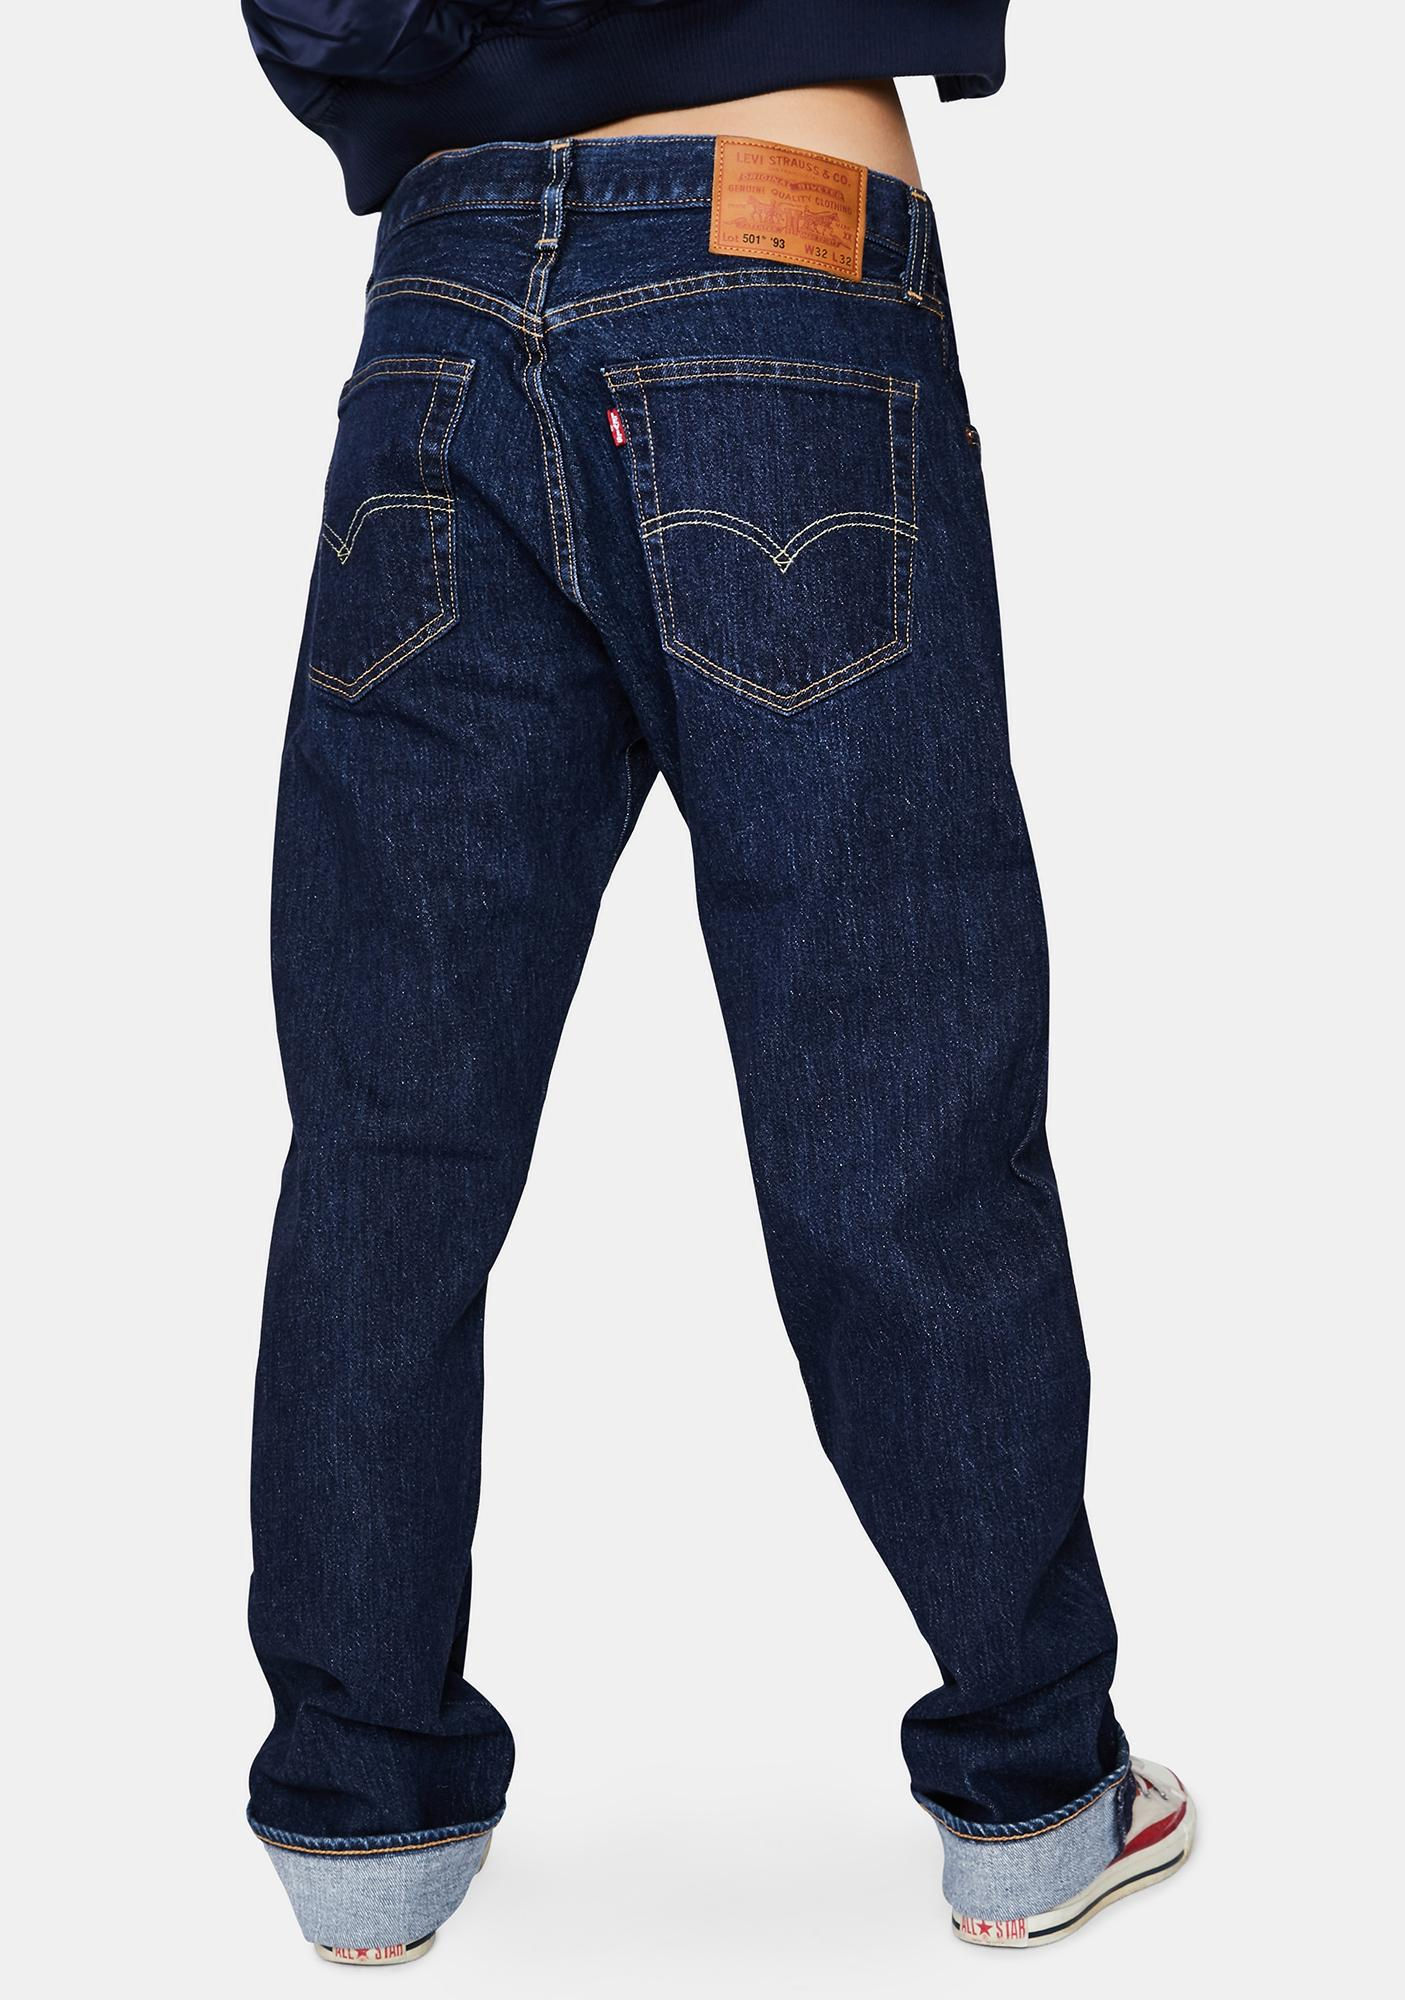 Levis Heather Rinse 501 Straight Leg Jeans